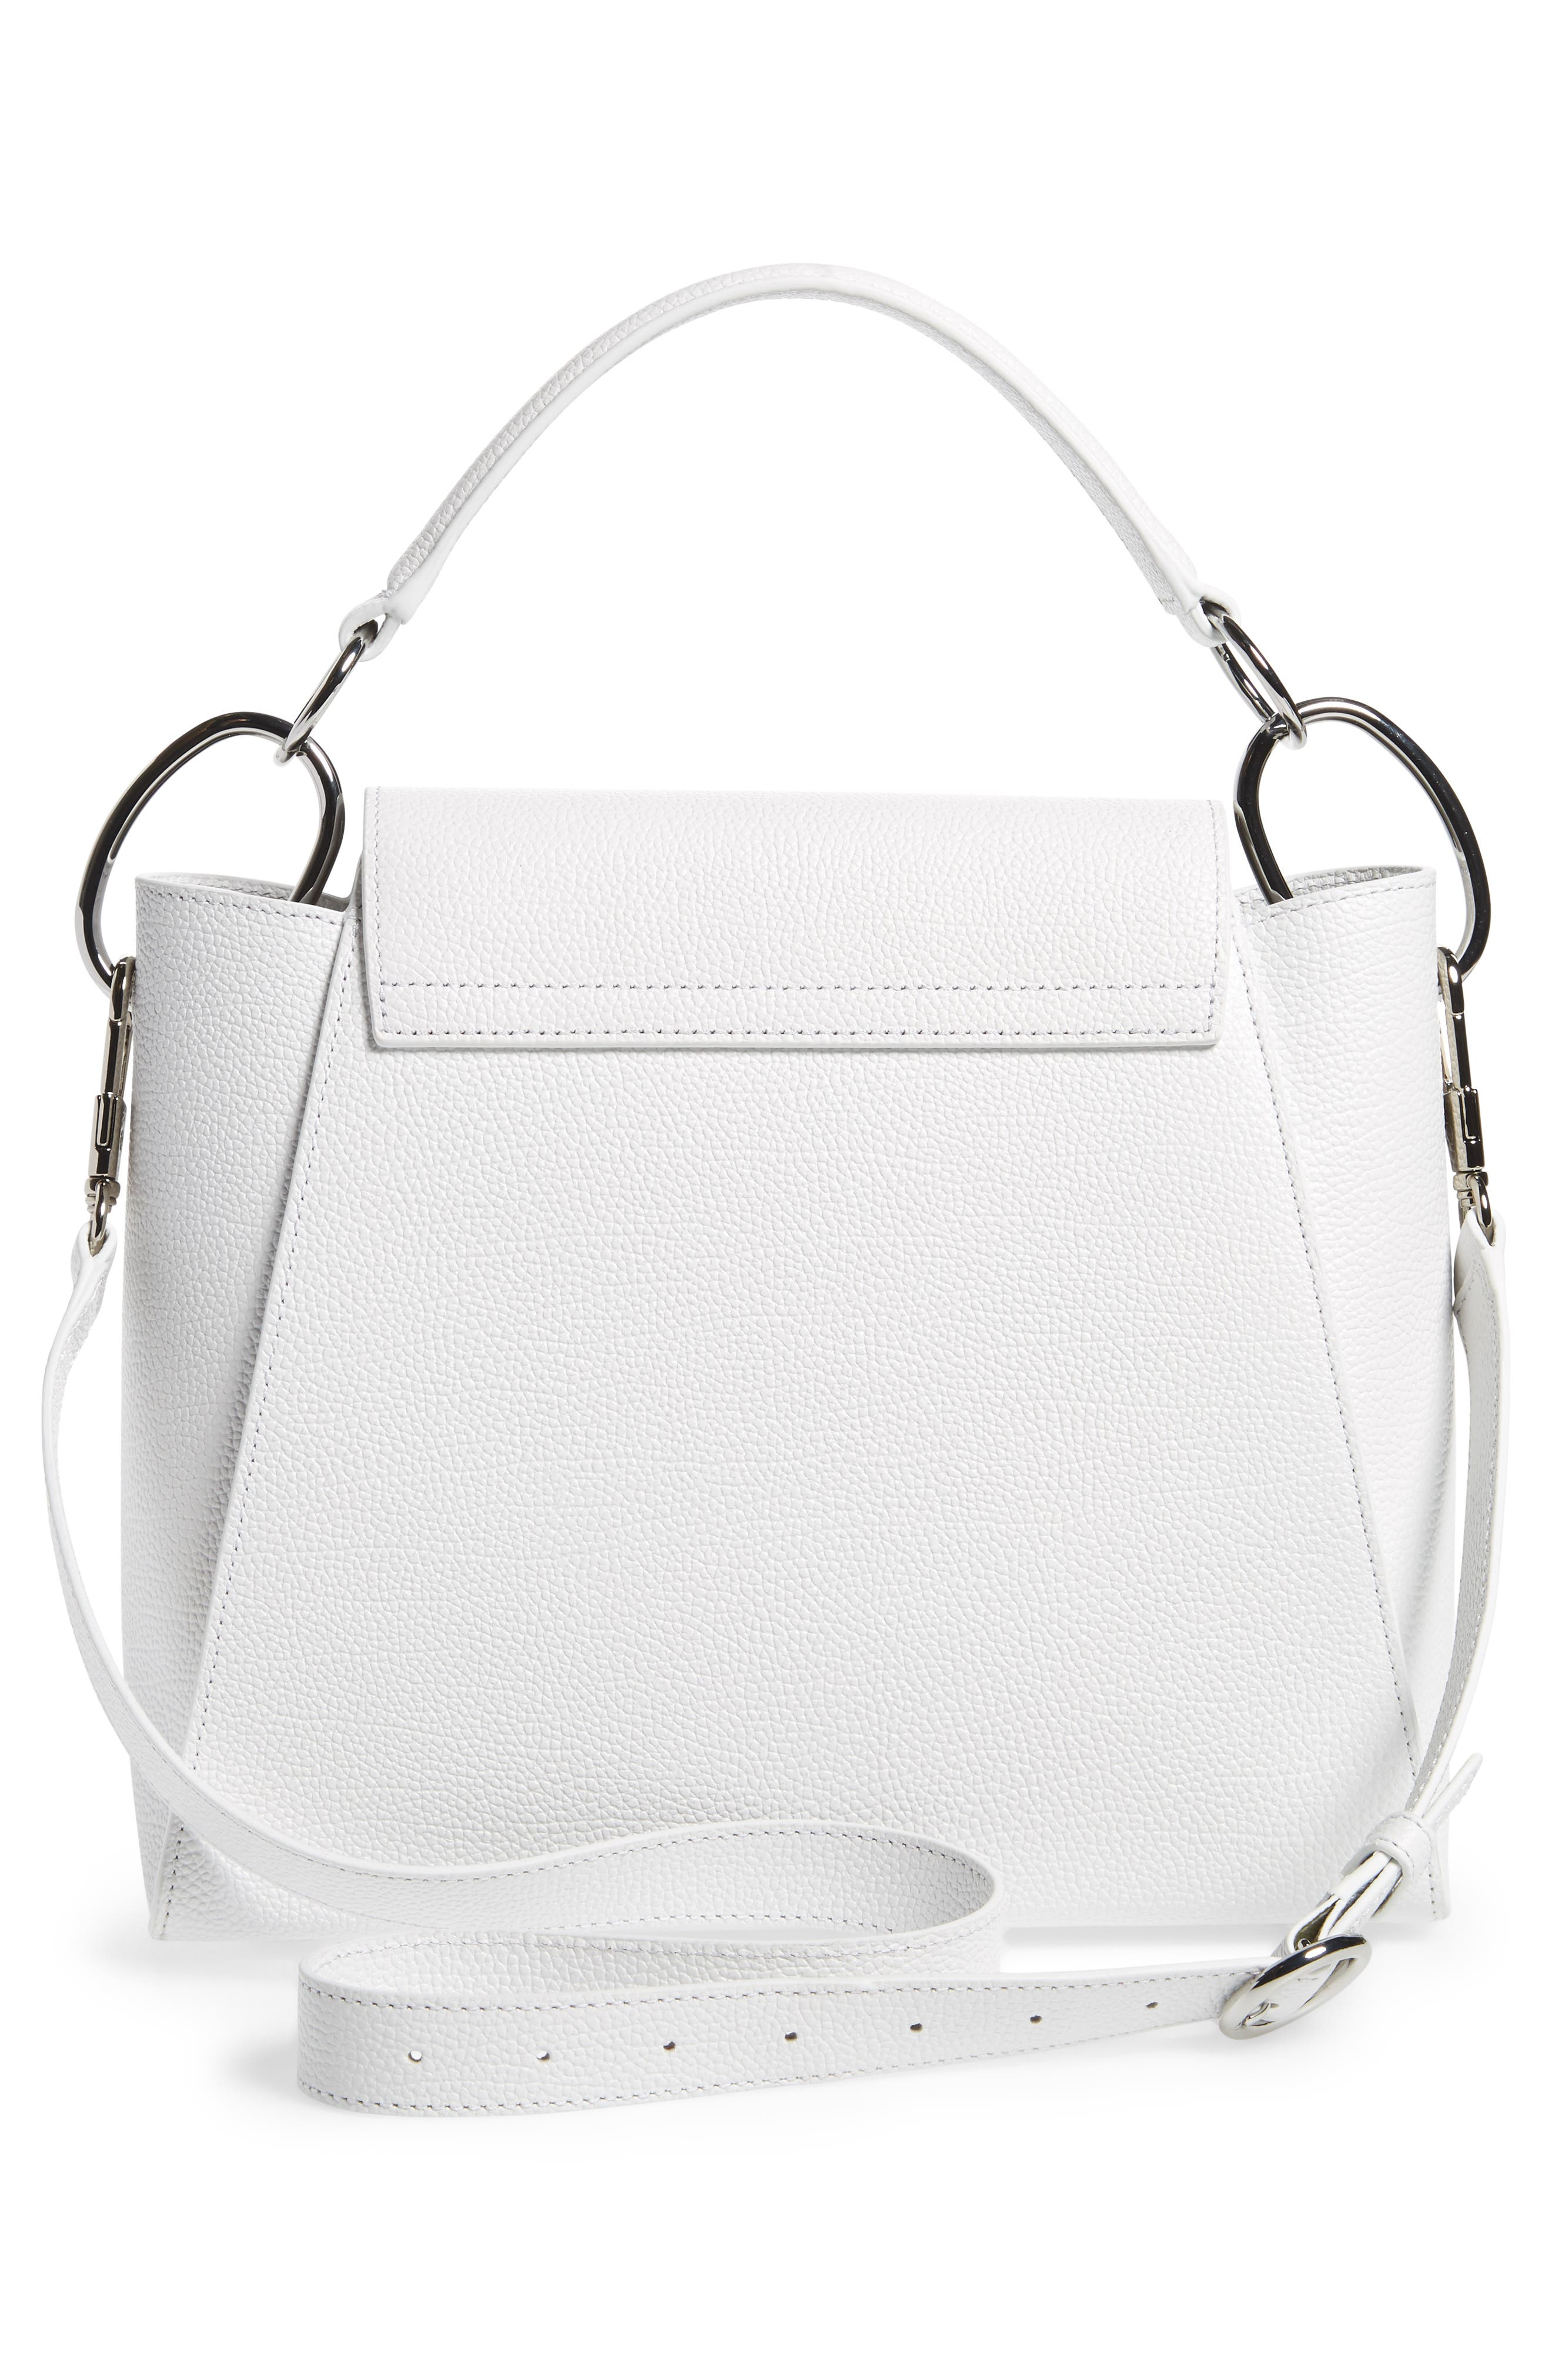 Leigh Top Handle Leather Satchel,                             Alternate thumbnail 3, color,                             Off White